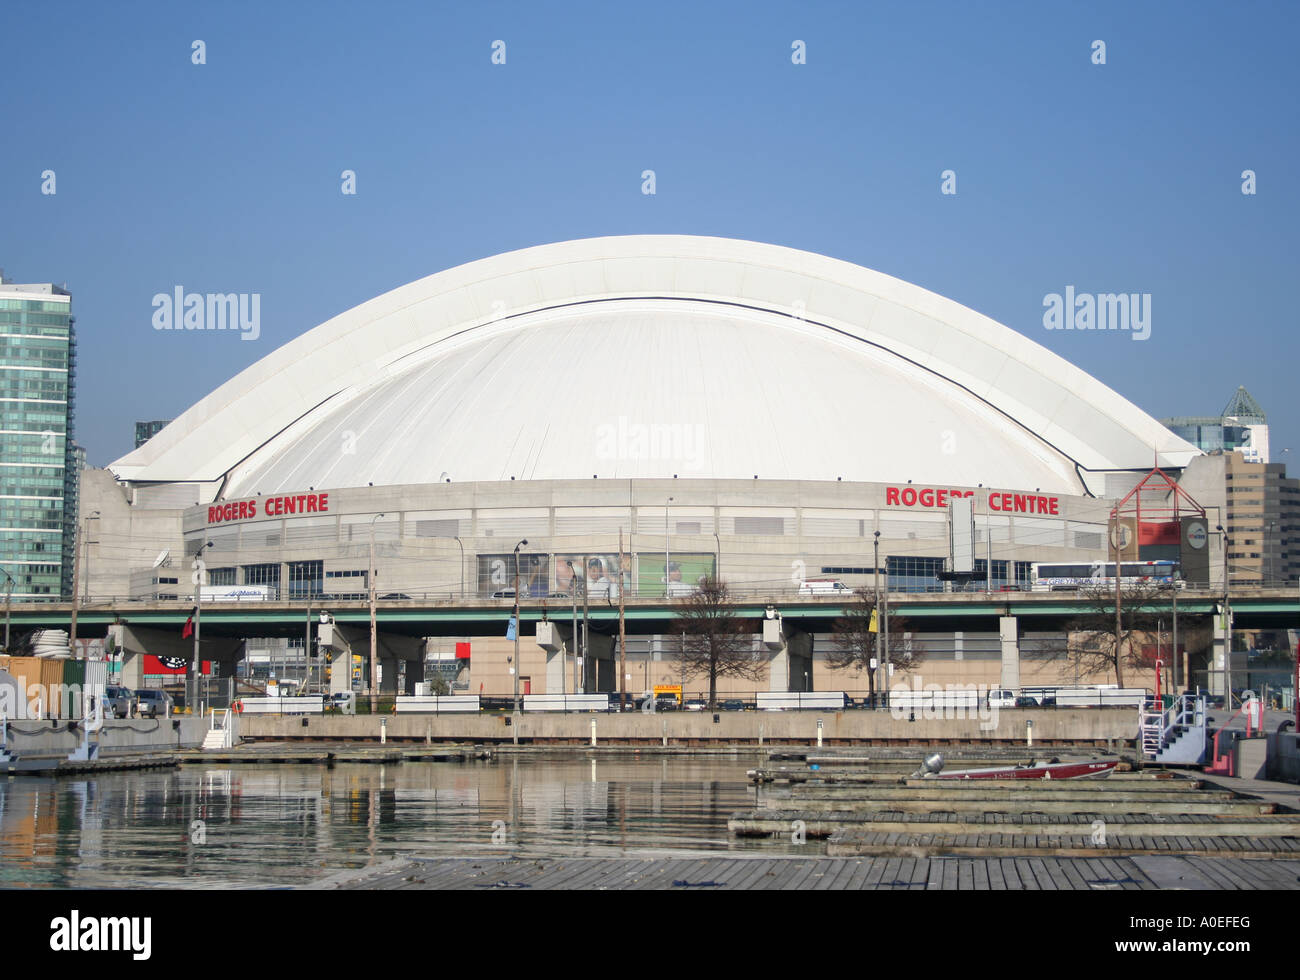 Rogers Centre formerly known as Skydome Toronto Canada  November 2006 - Stock Image